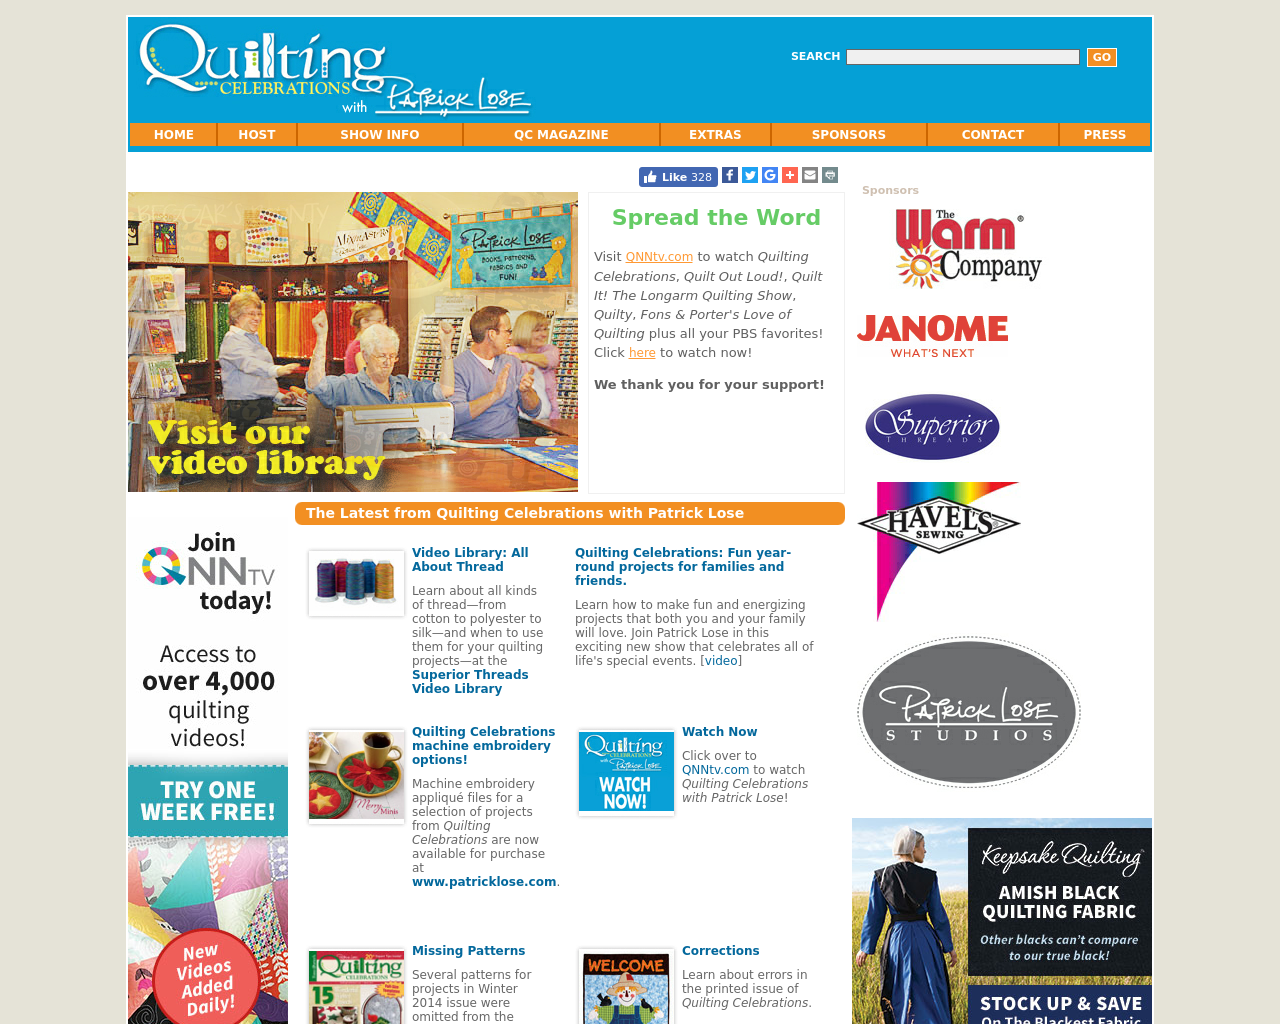 Quilting-Celebrations-With-Patrick-Lose-Advertising-Reviews-Pricing